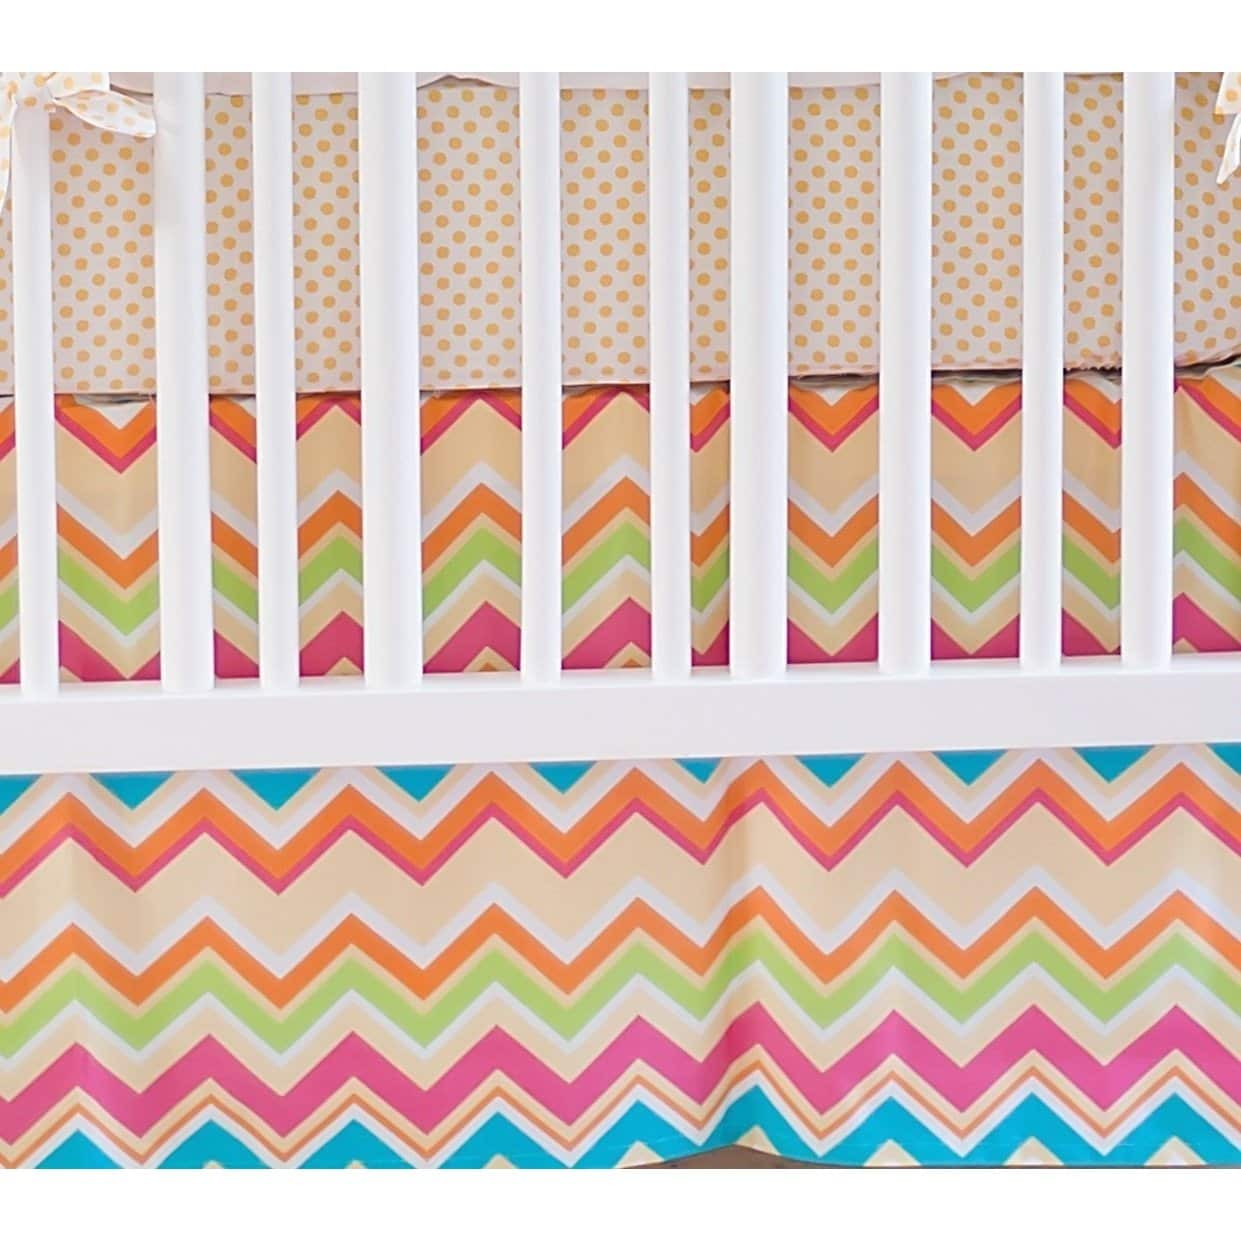 Crib Skirt | Yellow & Pink Chevron Sunnyside Up-Crib Skirt-New Arrivals-Jack and Jill Boutique